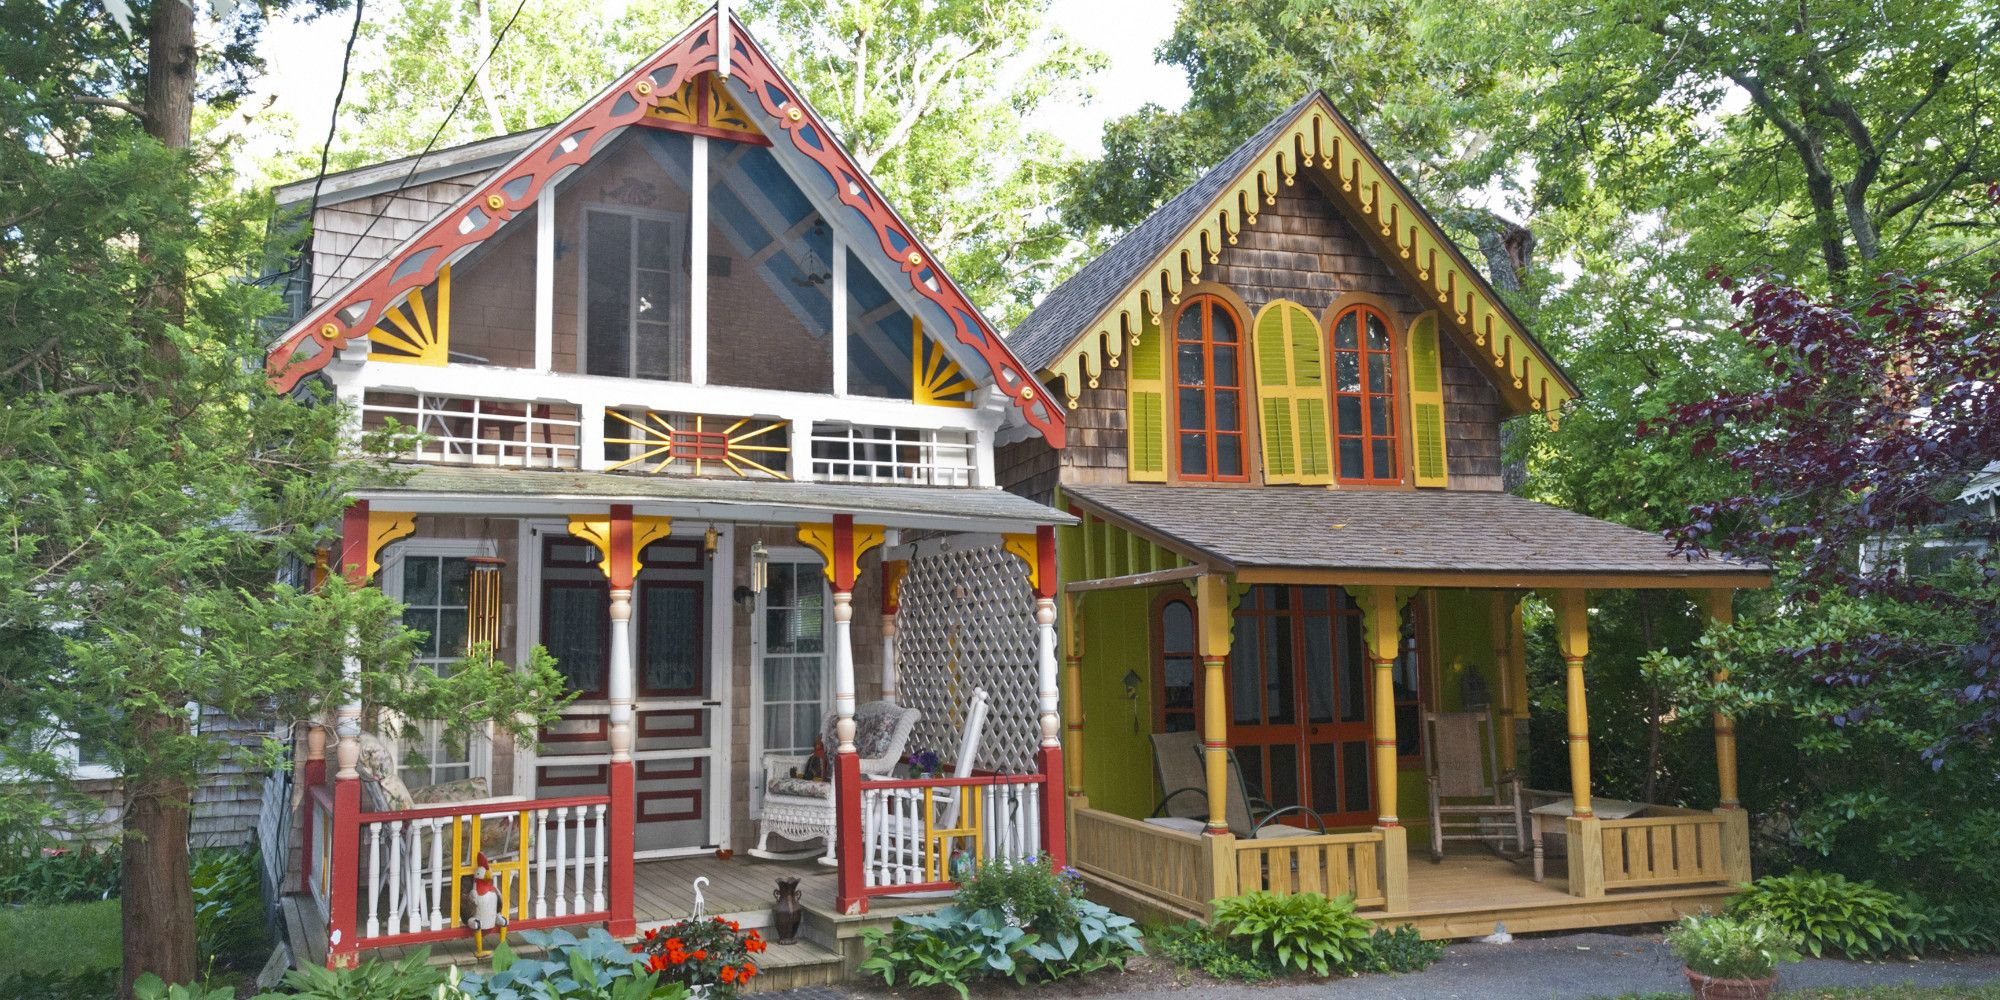 the history of martha s vineyard gingerbread houses oak bluffs rh countryliving com martha's vineyard cottages history martha vineyard methodist campground cottages